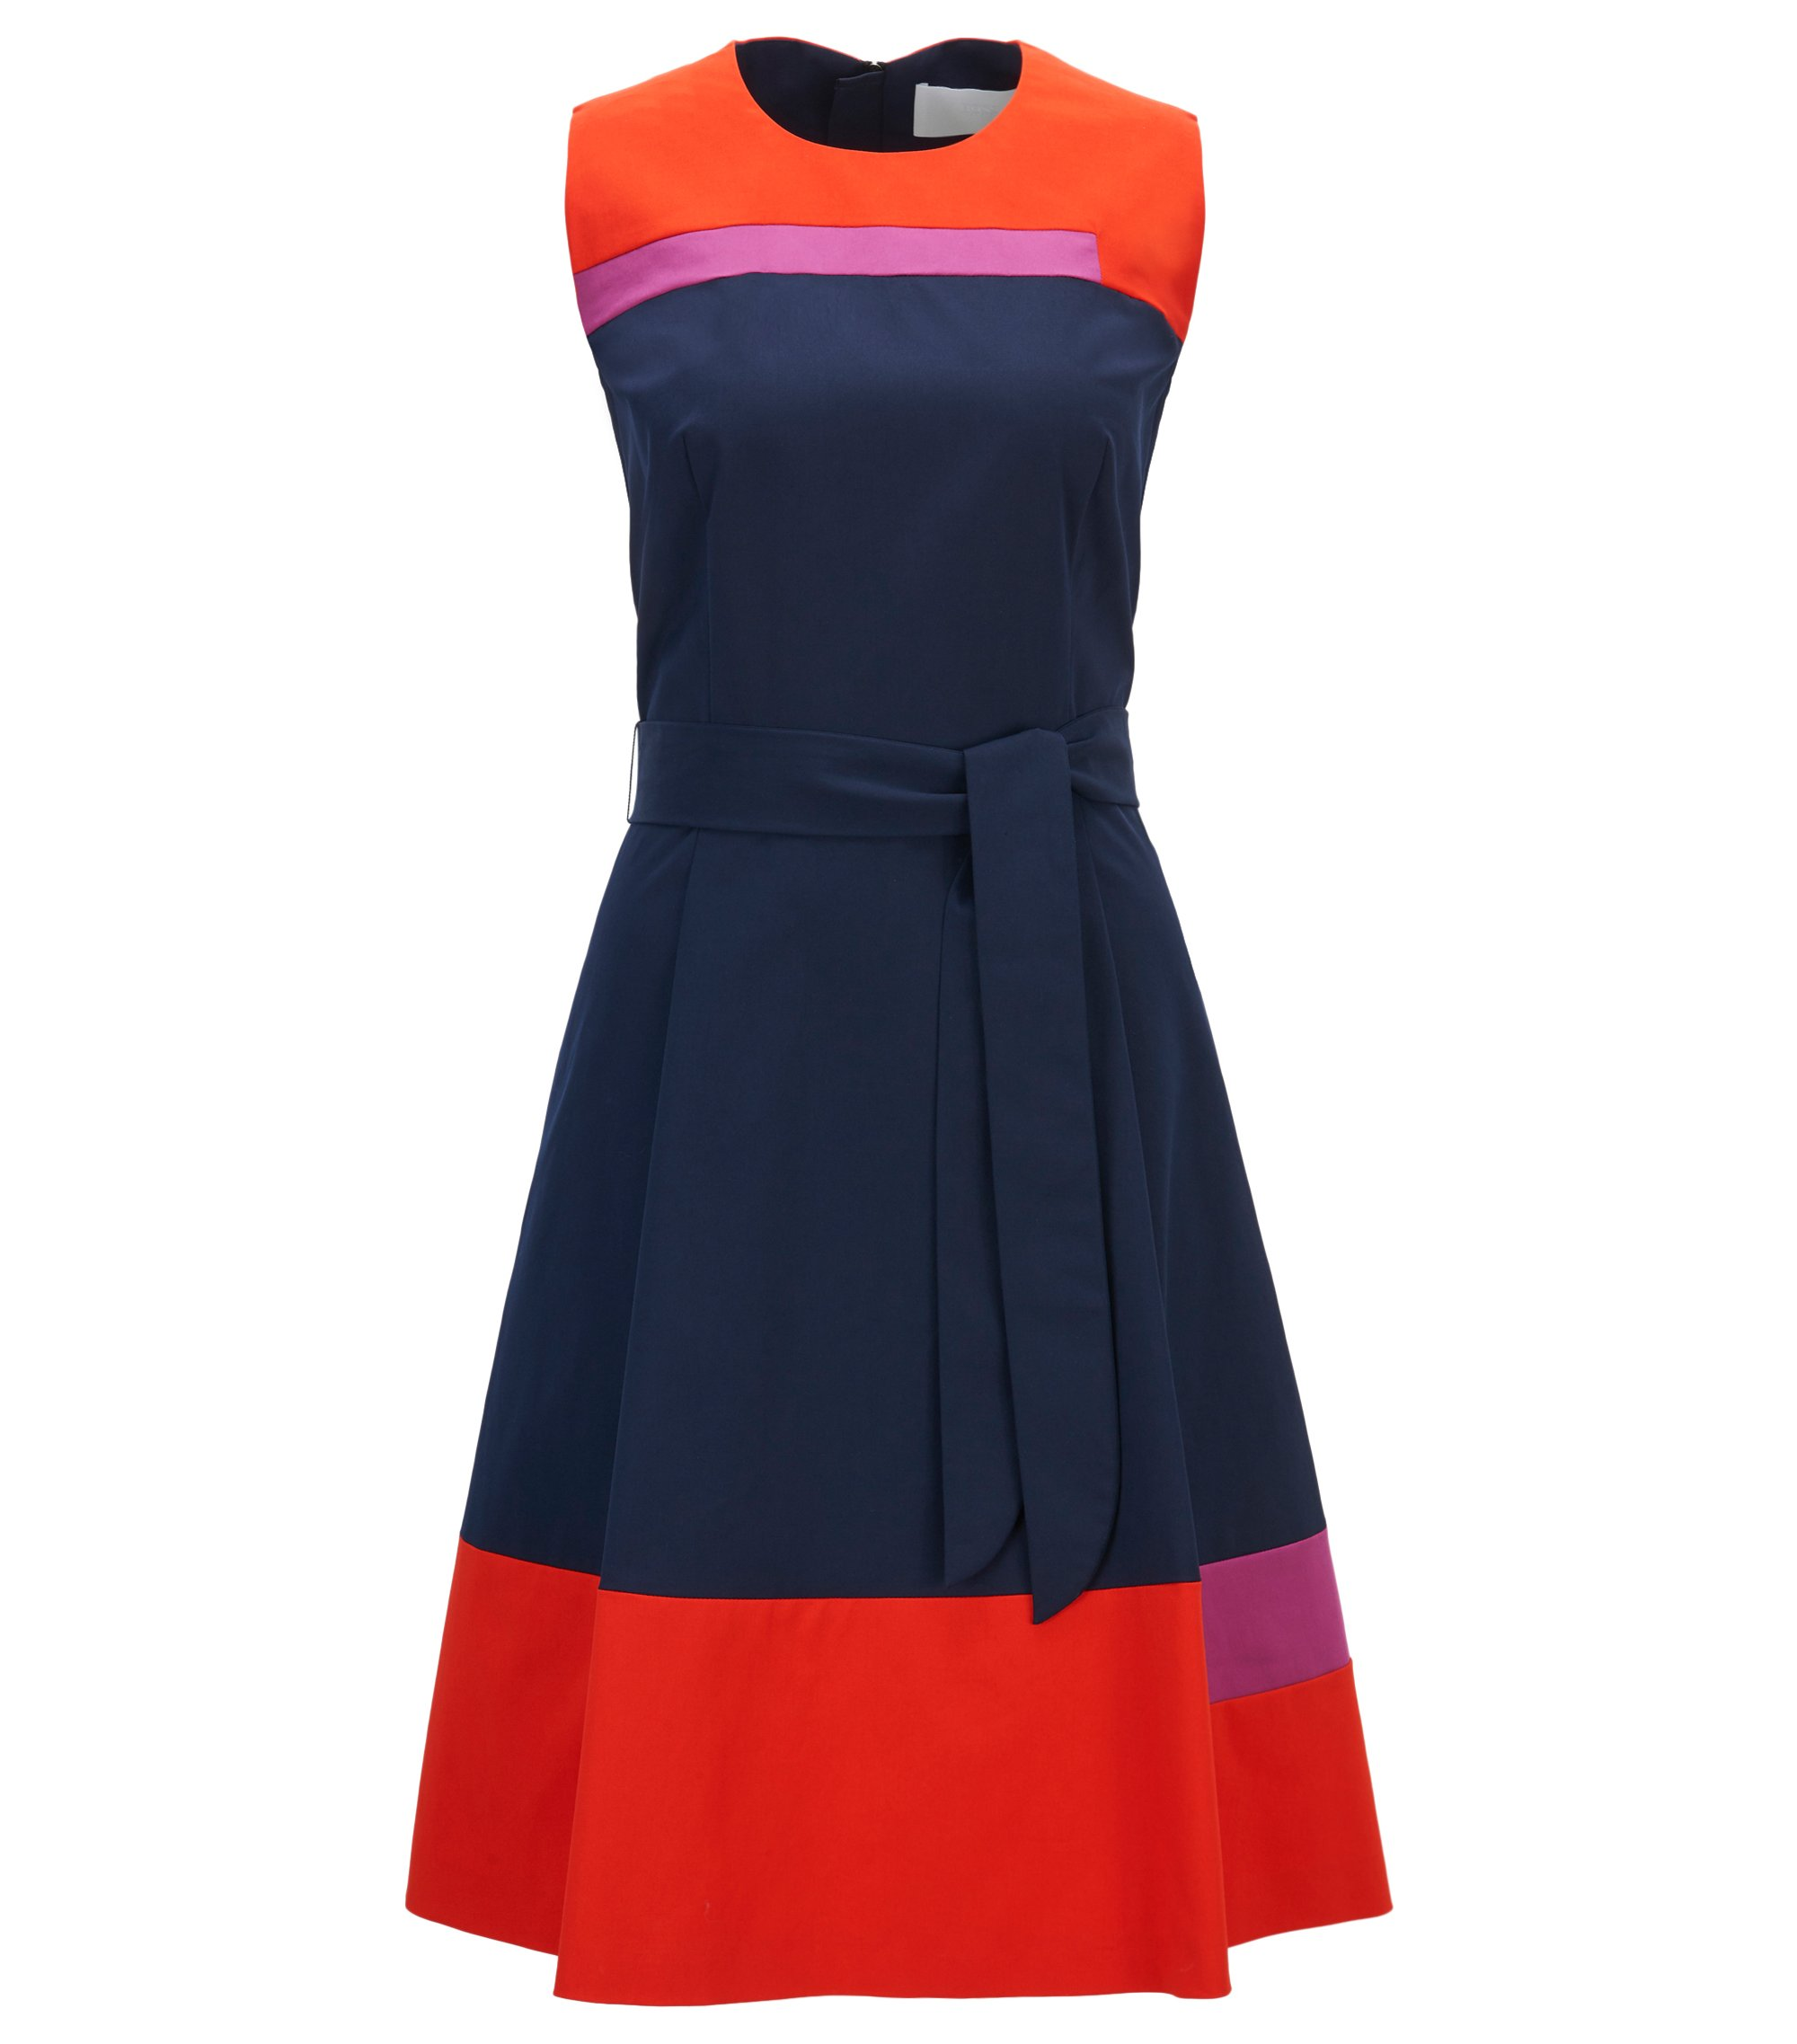 Robe color block sans manches en twill de coton stretch , Bleu